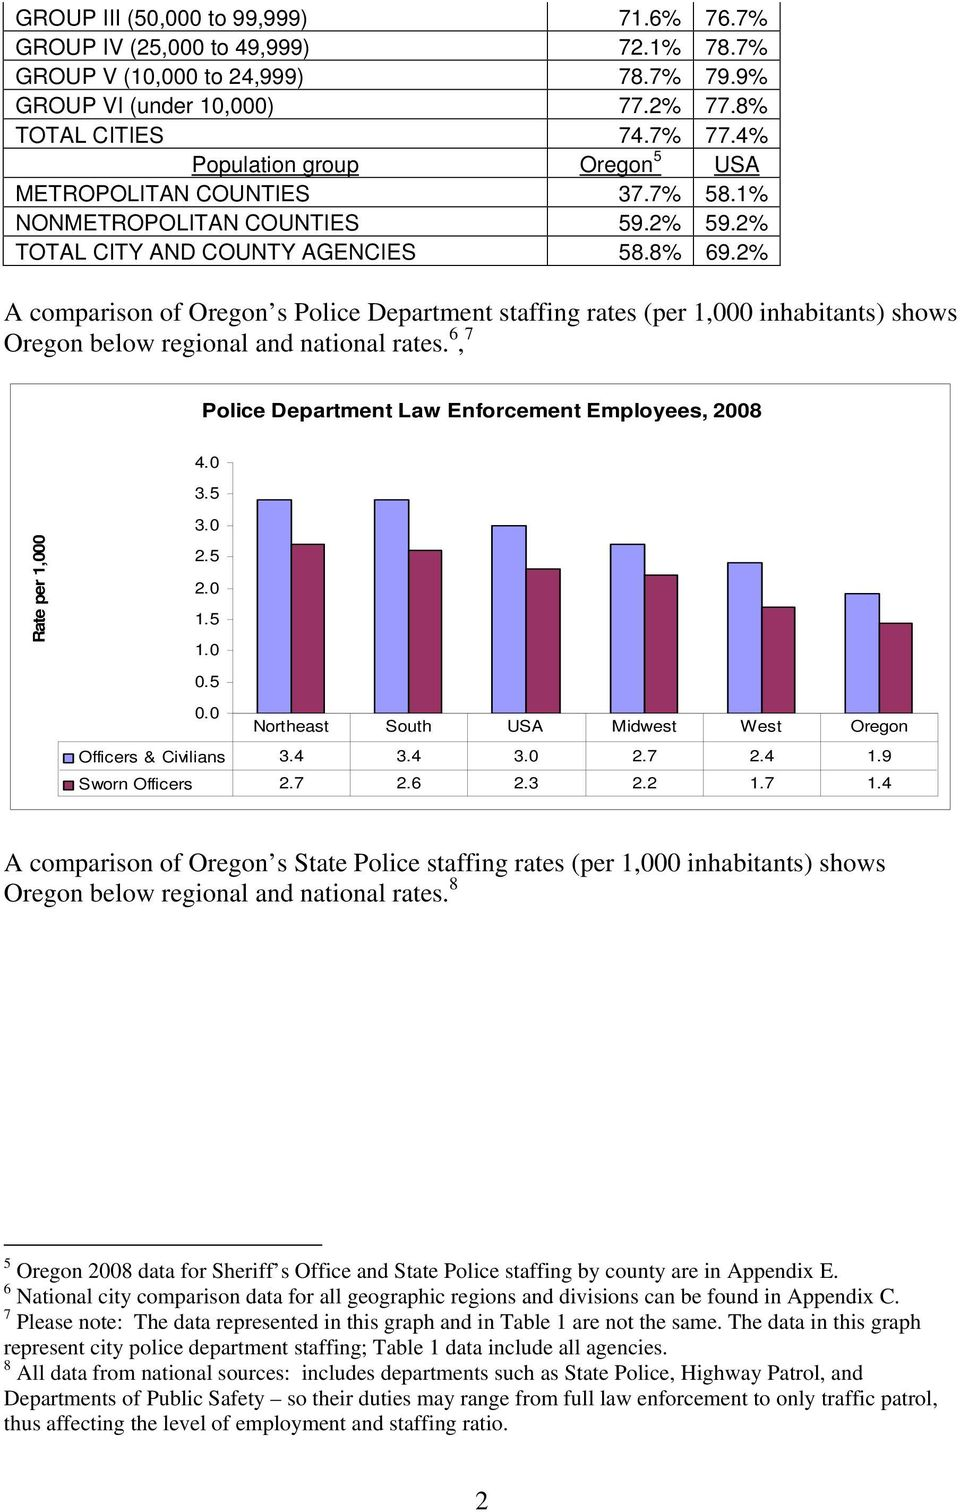 2% A comparison of Oregon s Police Department staffing rates (per 1,000 inhabitants) shows Oregon below regional and national rates. 6, 7 Police Department Law Enforcement Employees, 2008 4.0 3.